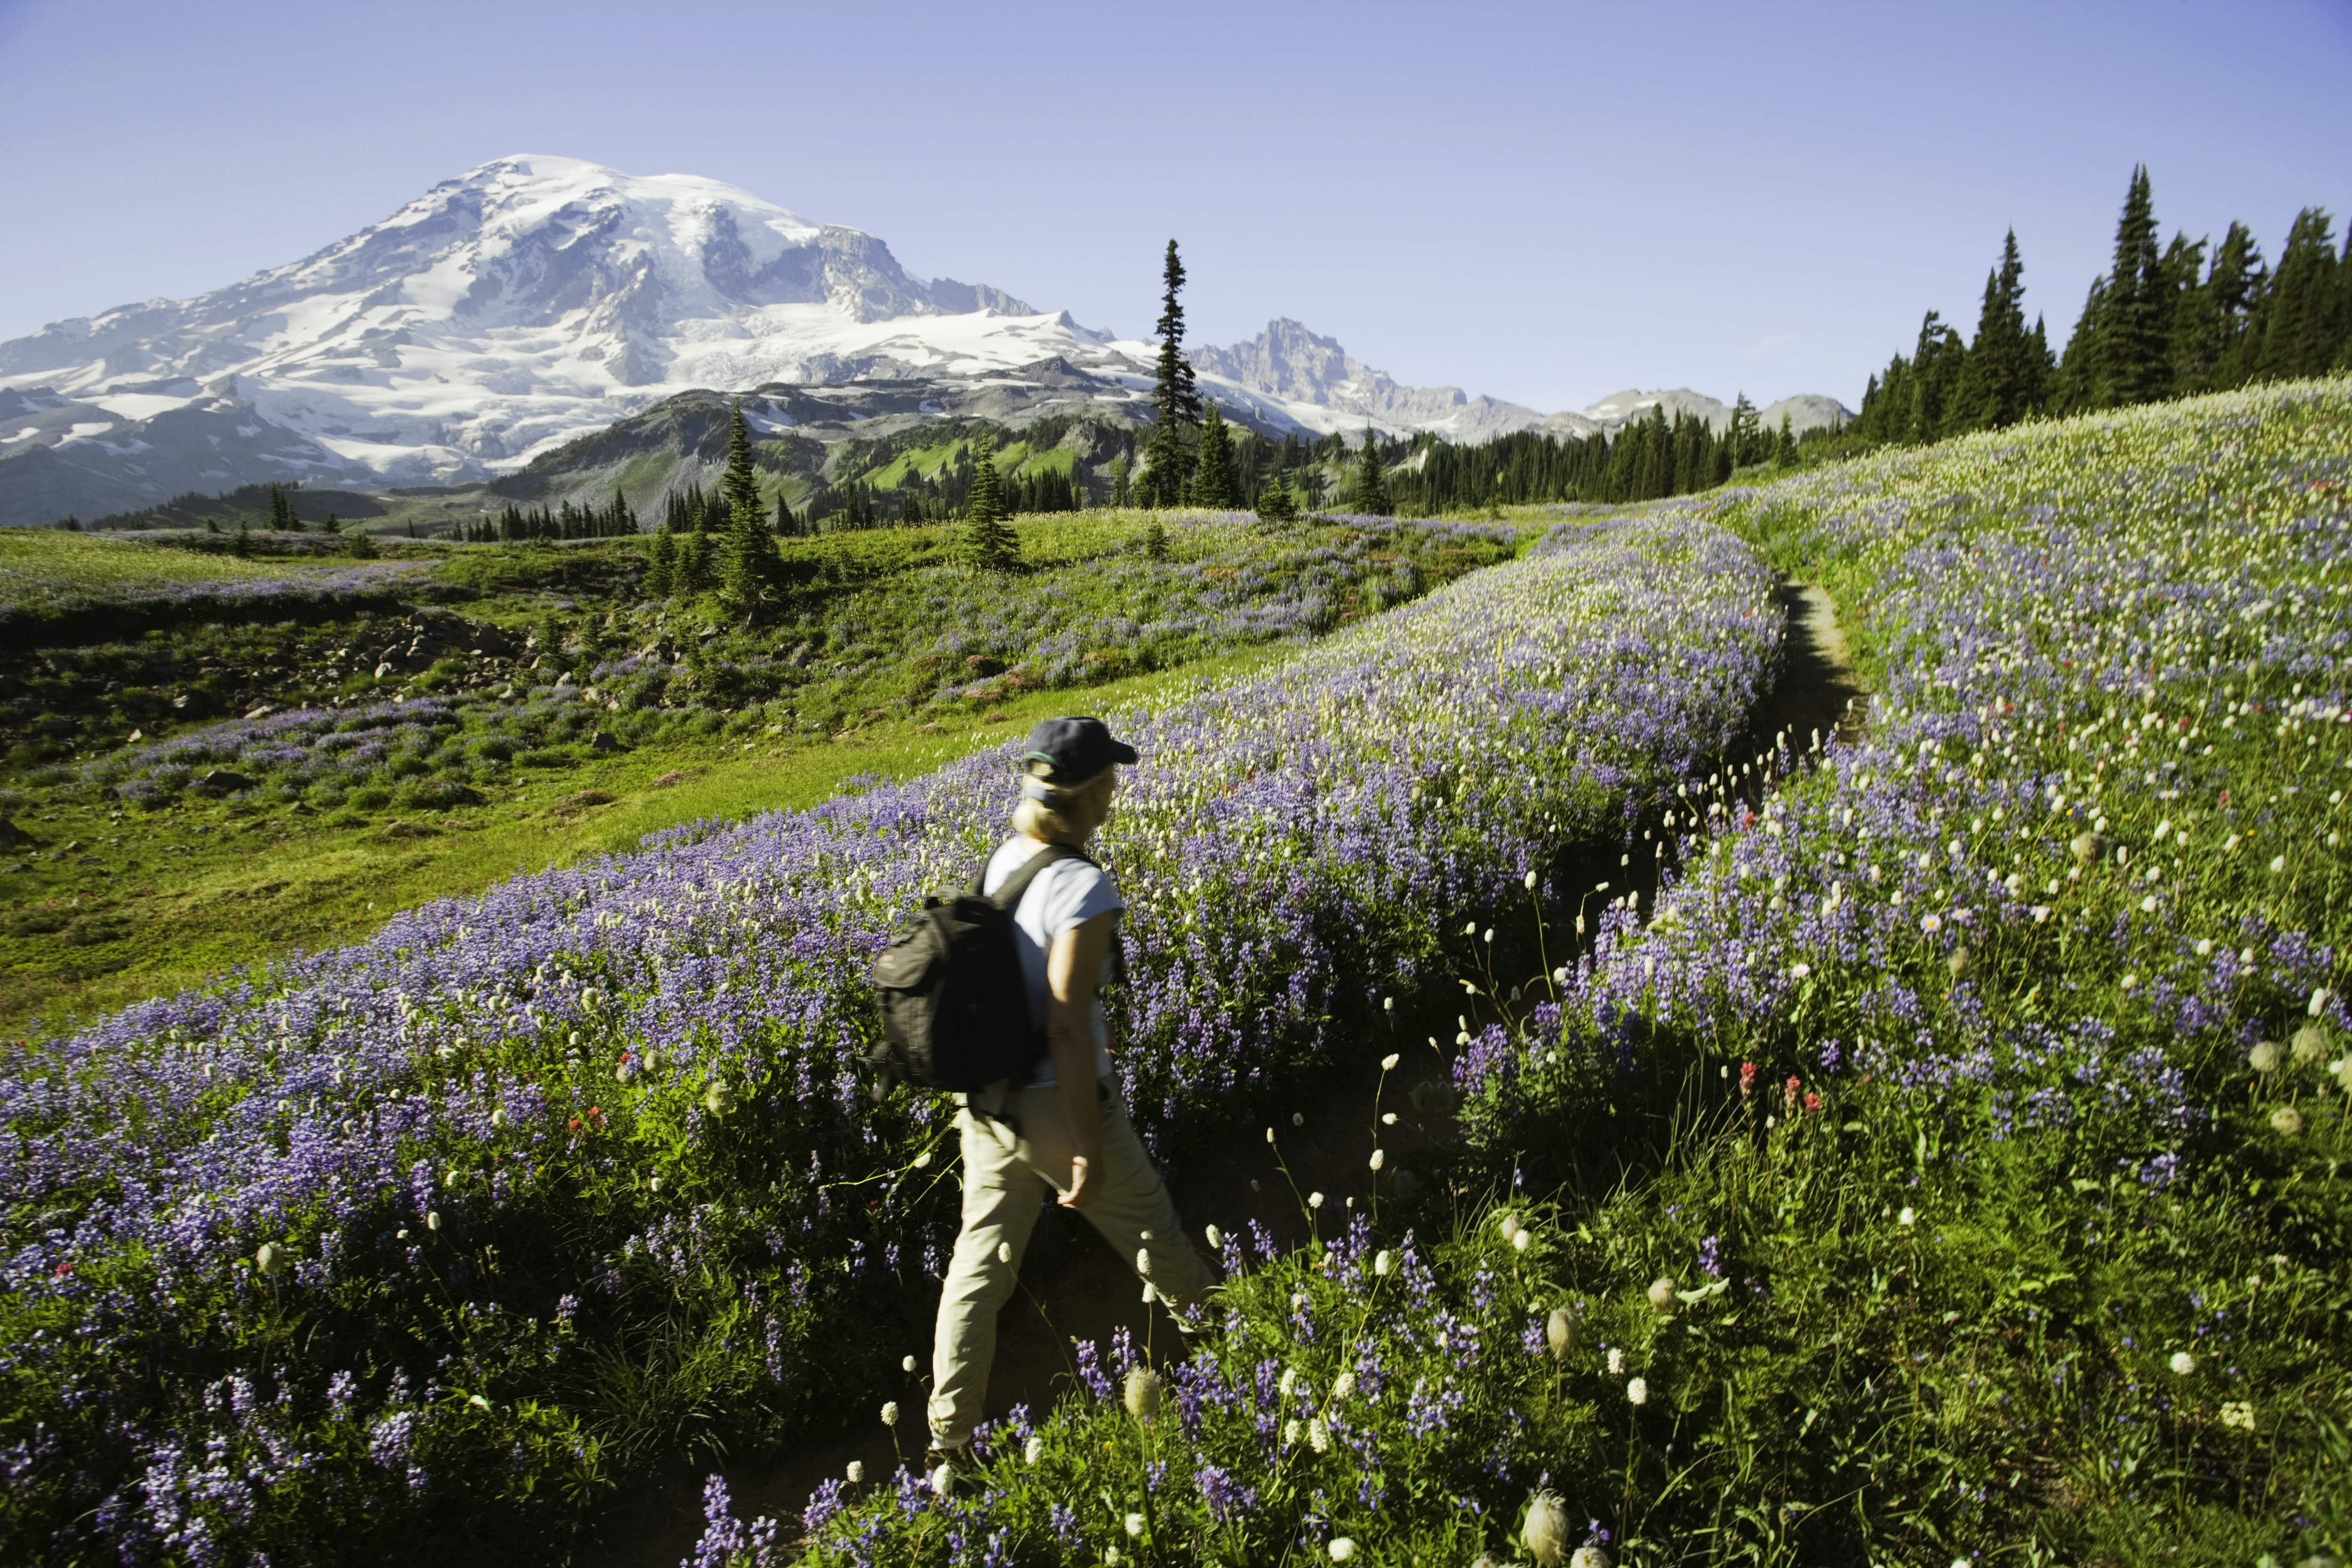 Advocates are pushing for air-tour management plans to regulate the commercial operators who fly over America's national parks, including Mount Rainier, in droves. Image: Rene Frederic/Getty Images